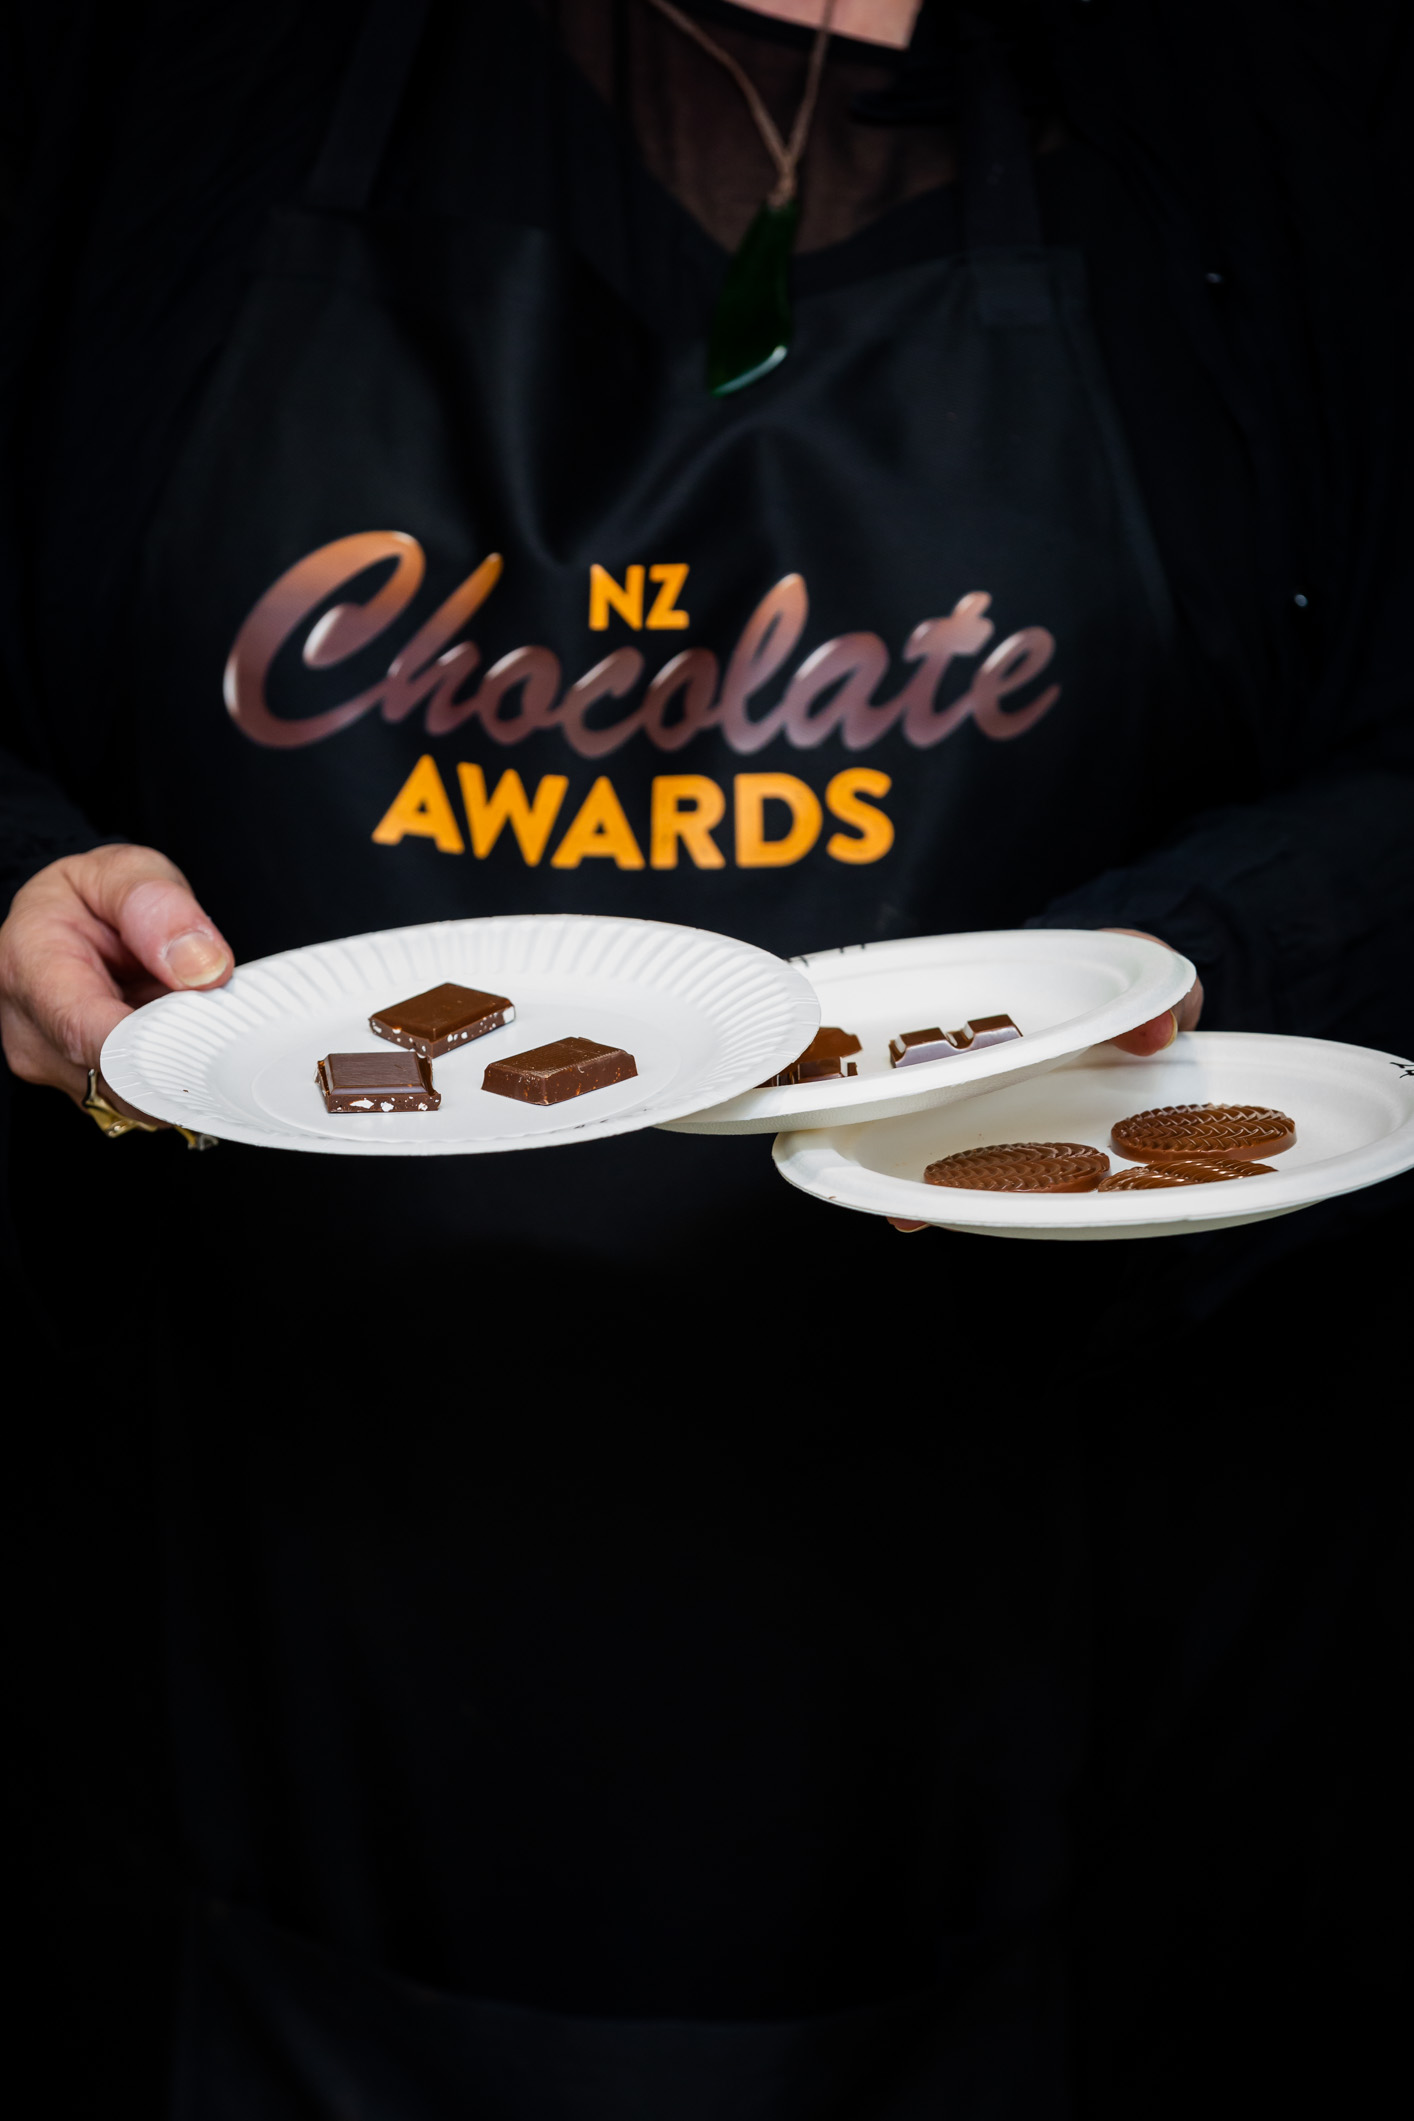 NZ Chocolate Awards 0050 - Copy.jpg